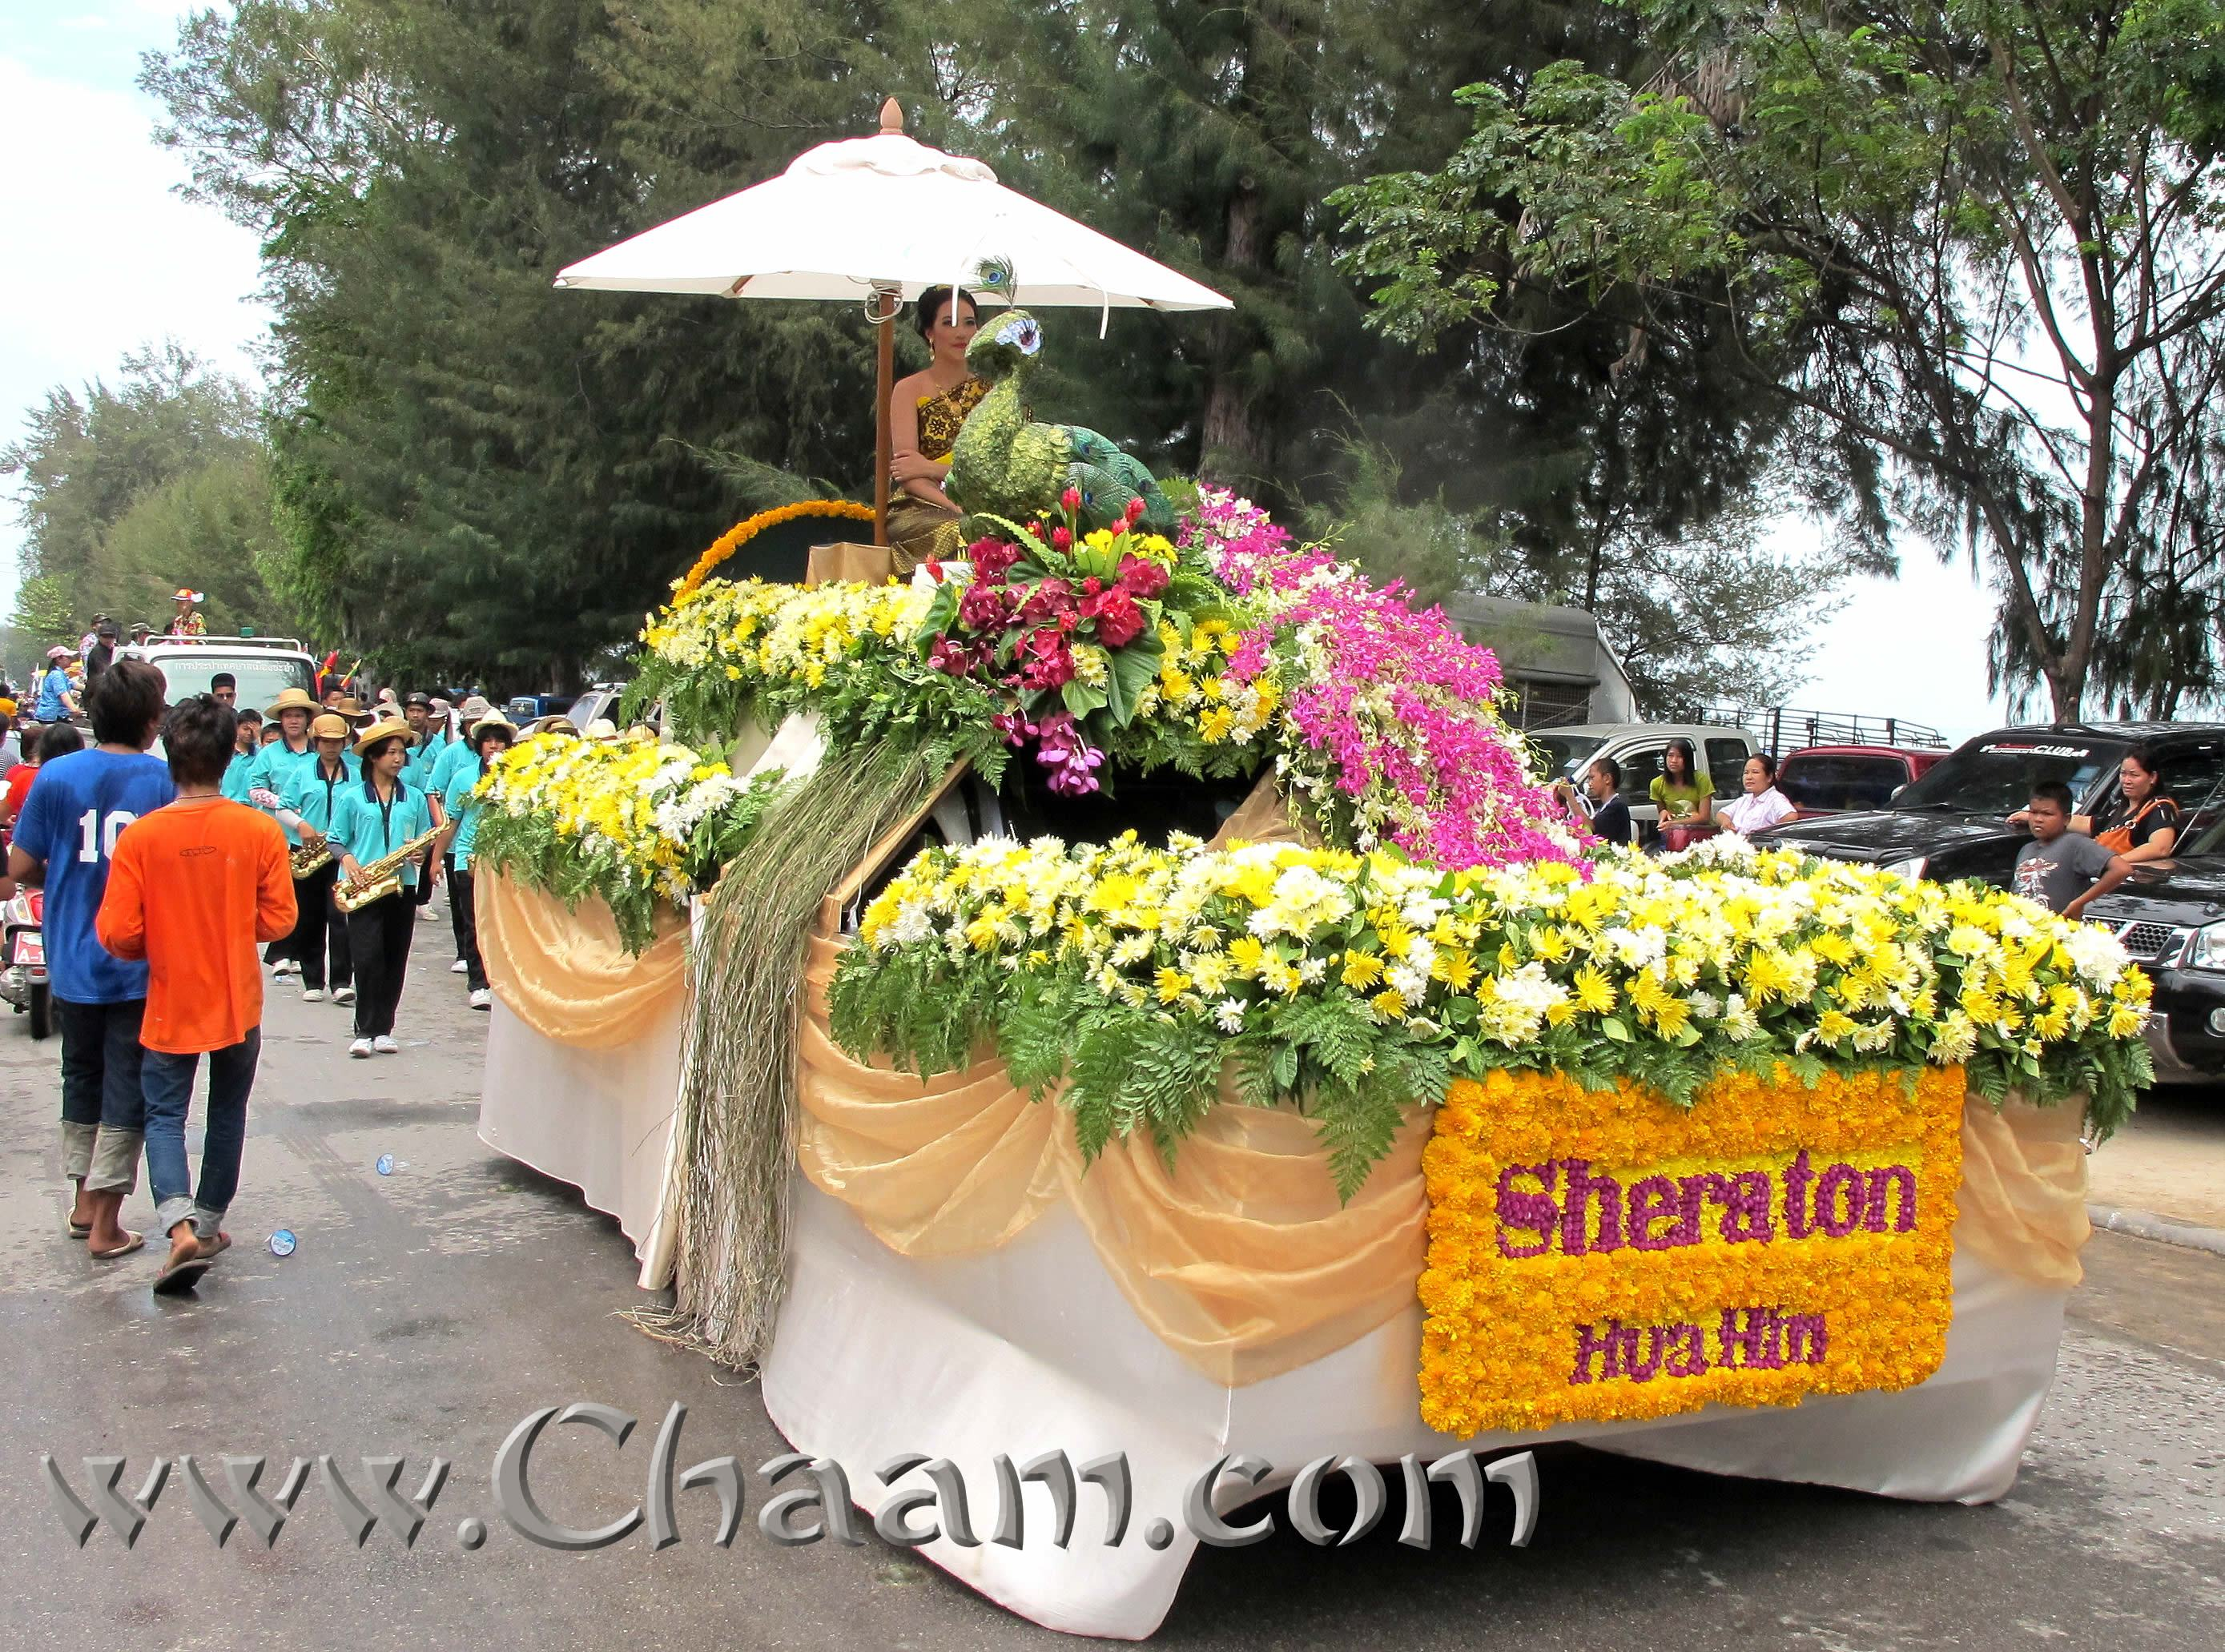 Sheraton Hotel Hua Hin at Songkran Cha-Am